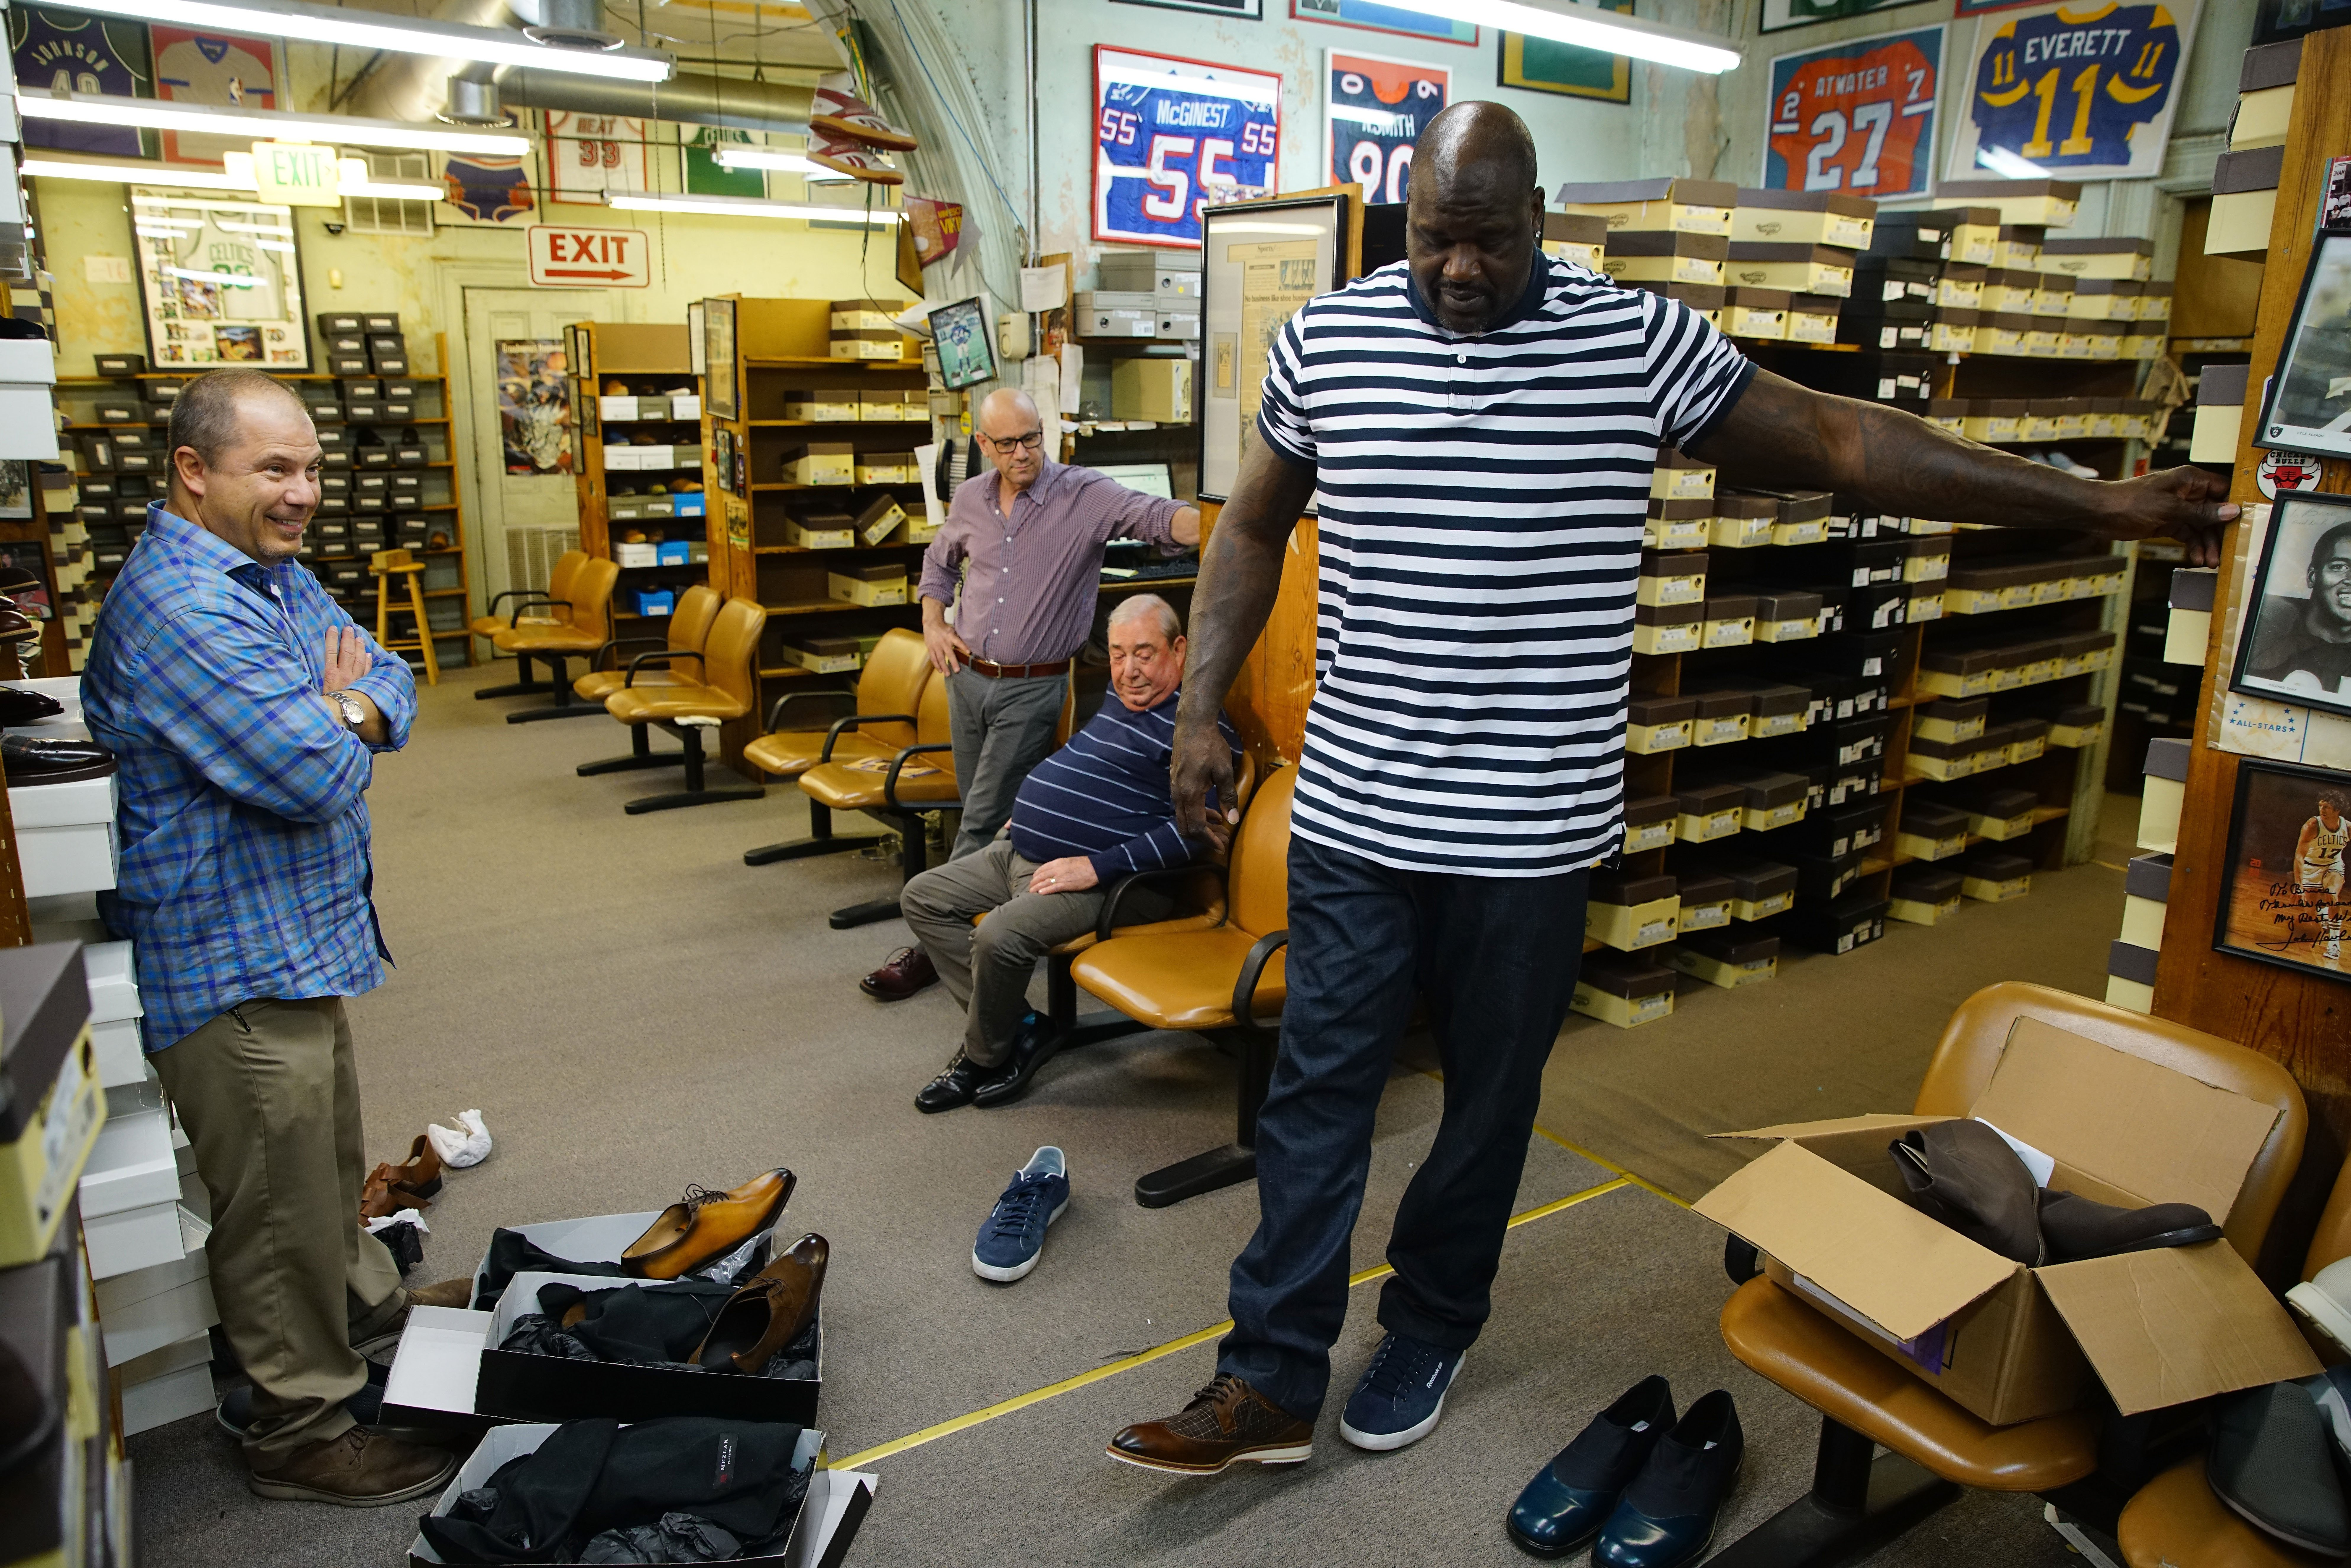 Shaquille O'Neal tries on shoes at Friedman?s Shoes in Atlanta during a recent video shoot for Small Business Saturday on October 24, 2017 in Atlanta, Georgia. (Photo by Daniel Shirey/Getty Images for American Express)